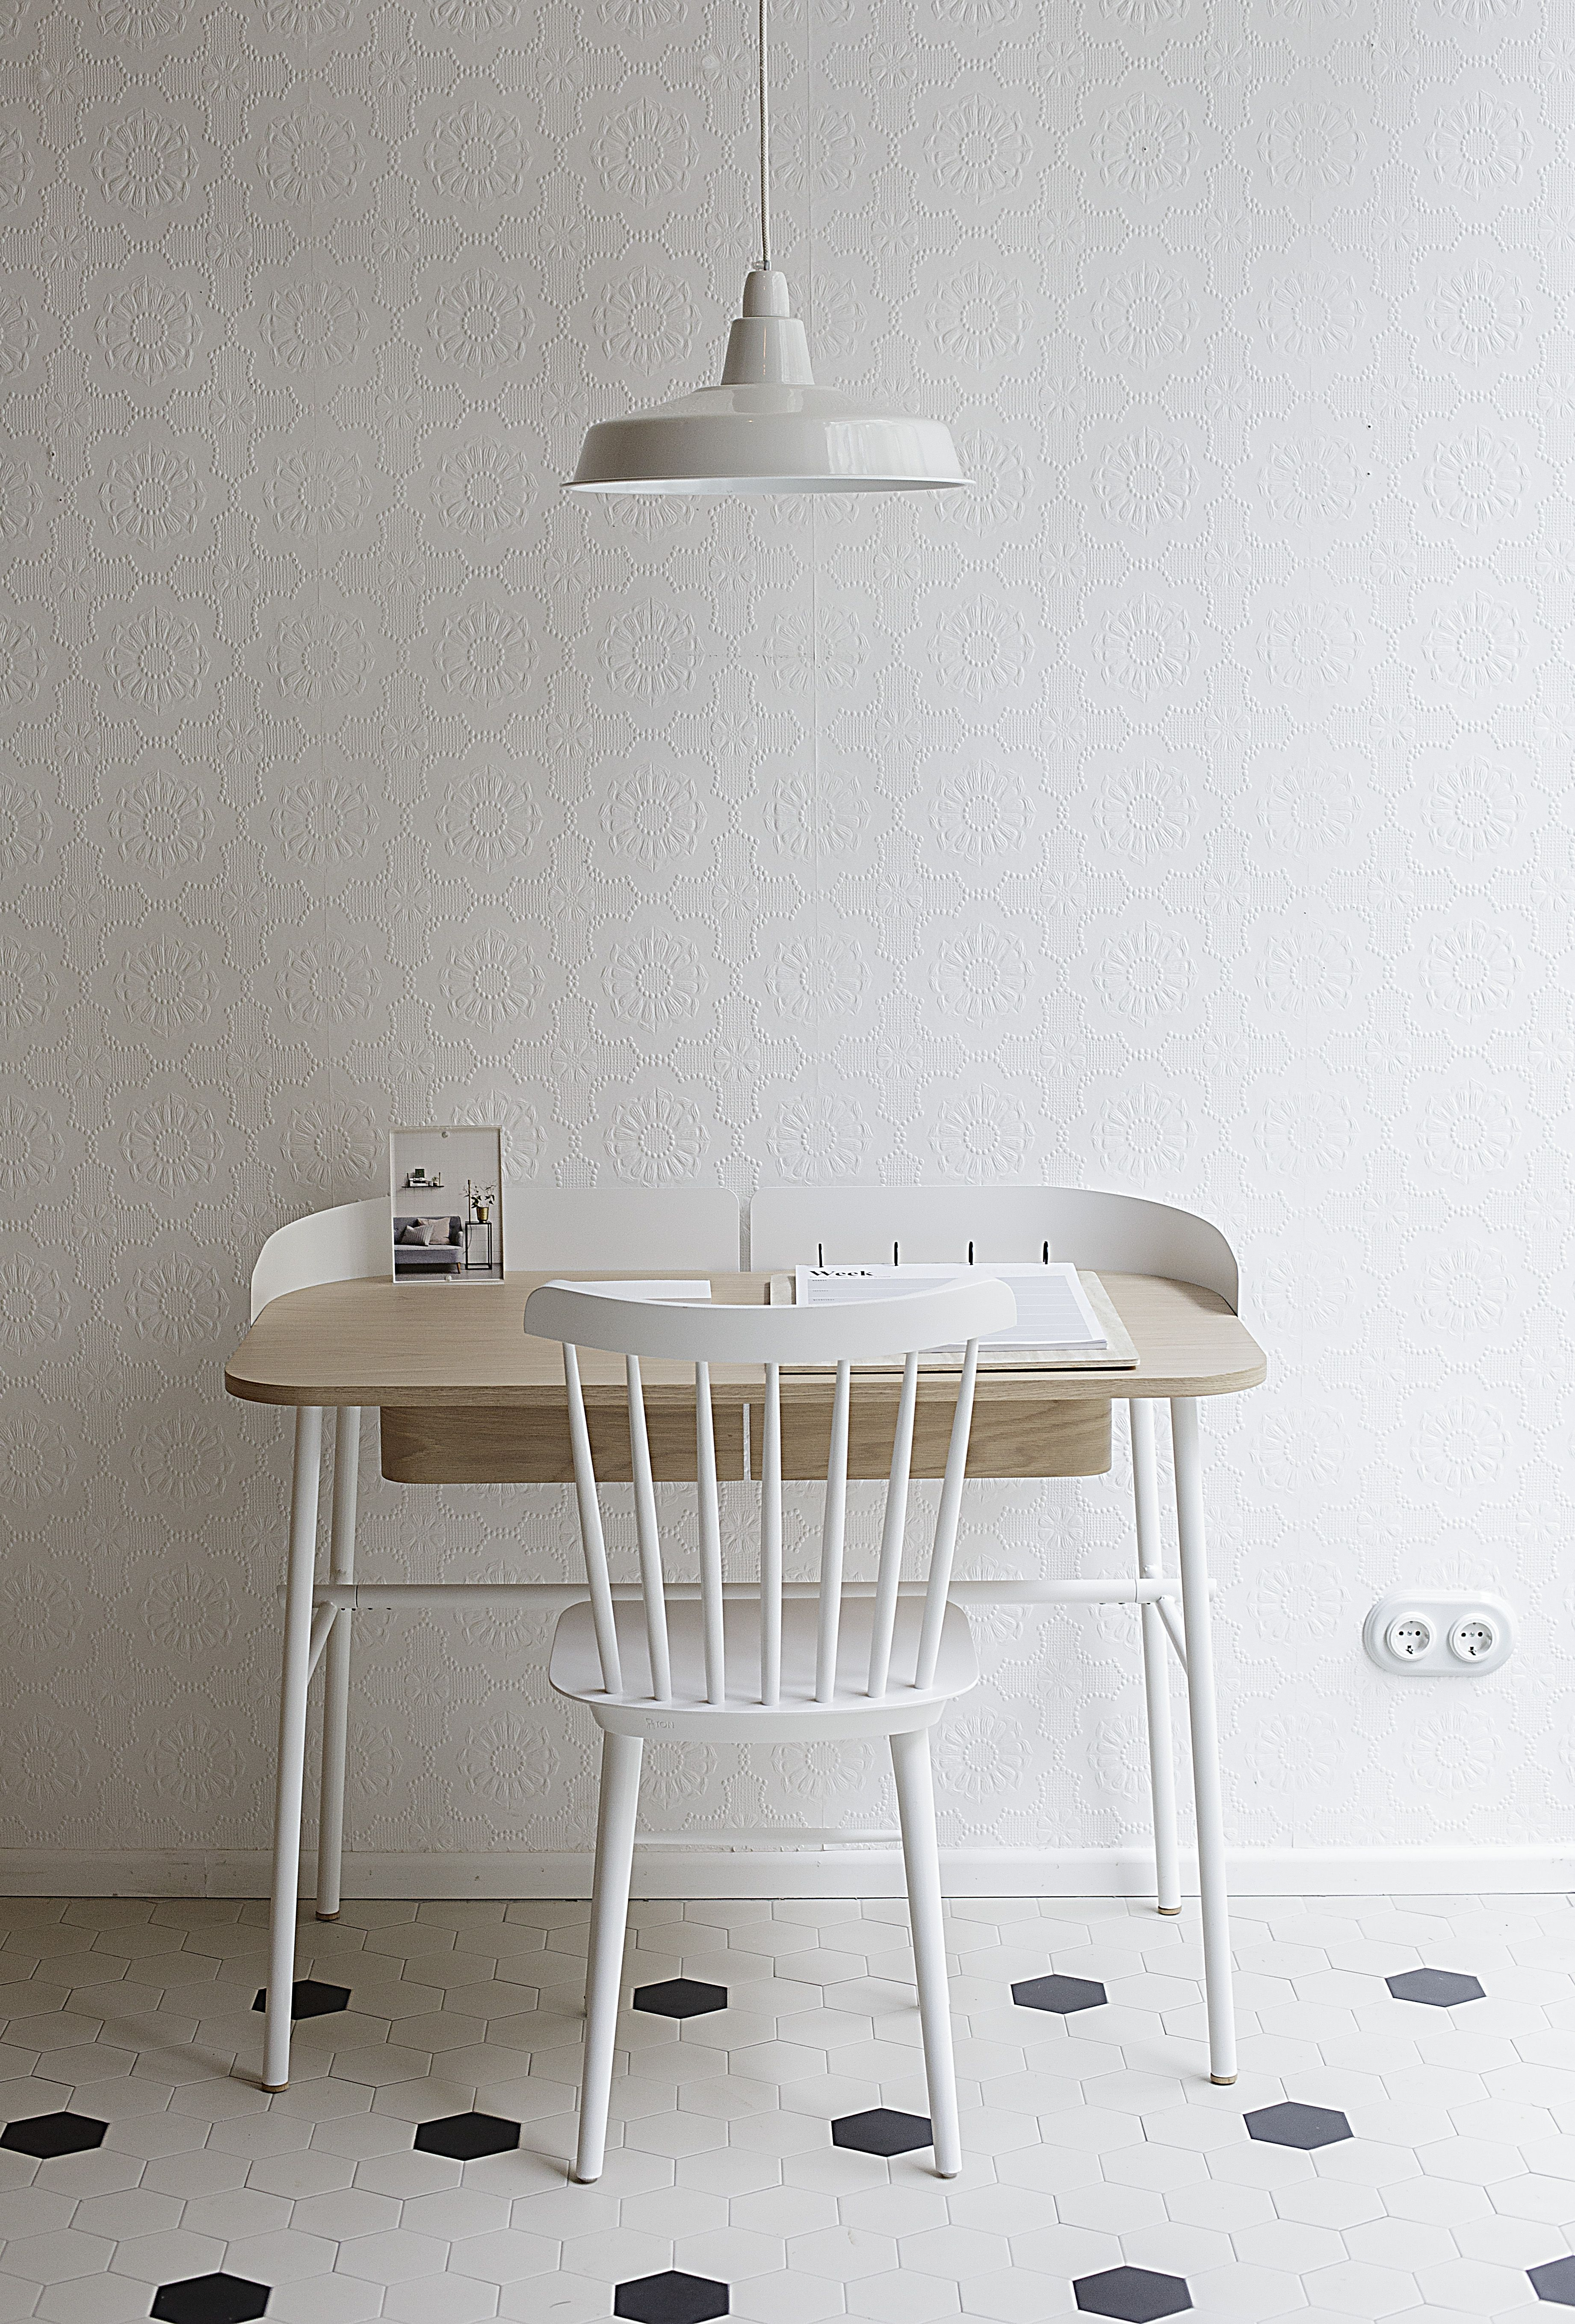 Victor desk by pierre fran ois dubois for hart picture for Tende casa minimalista